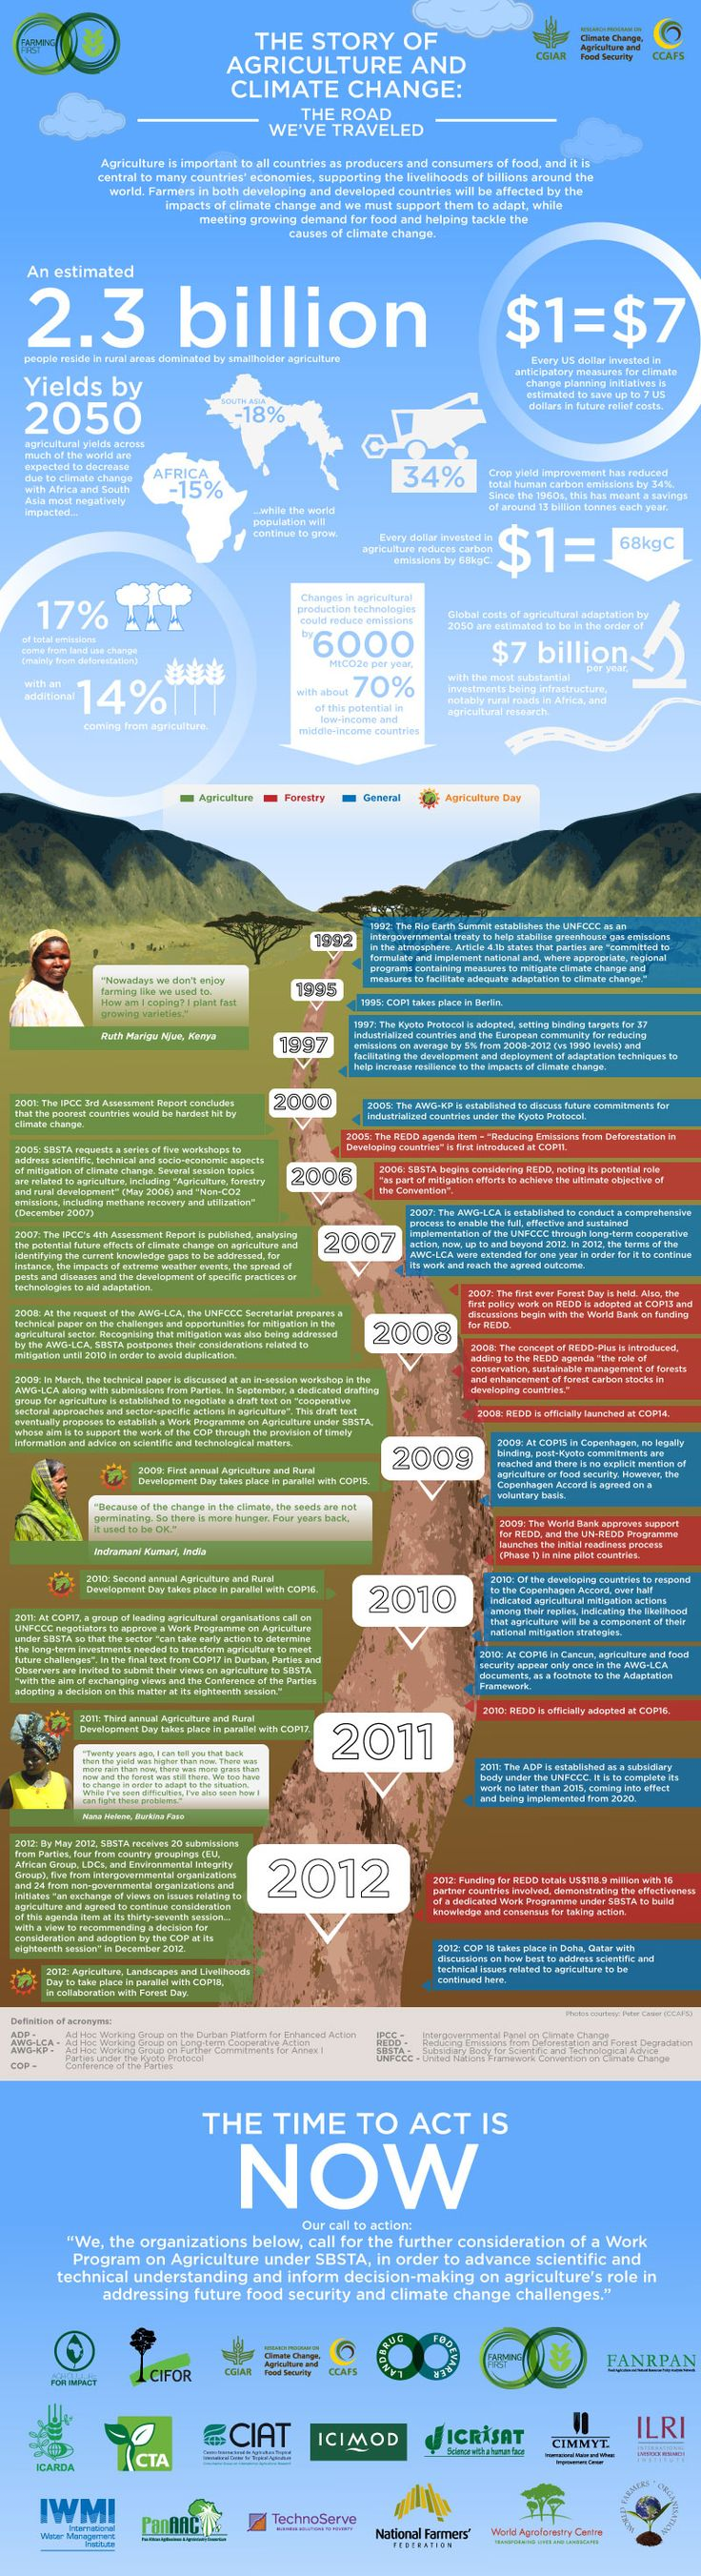 17 best images about multimodal essay info graphics the story of agriculture and climate change the road we ve traveled infographic